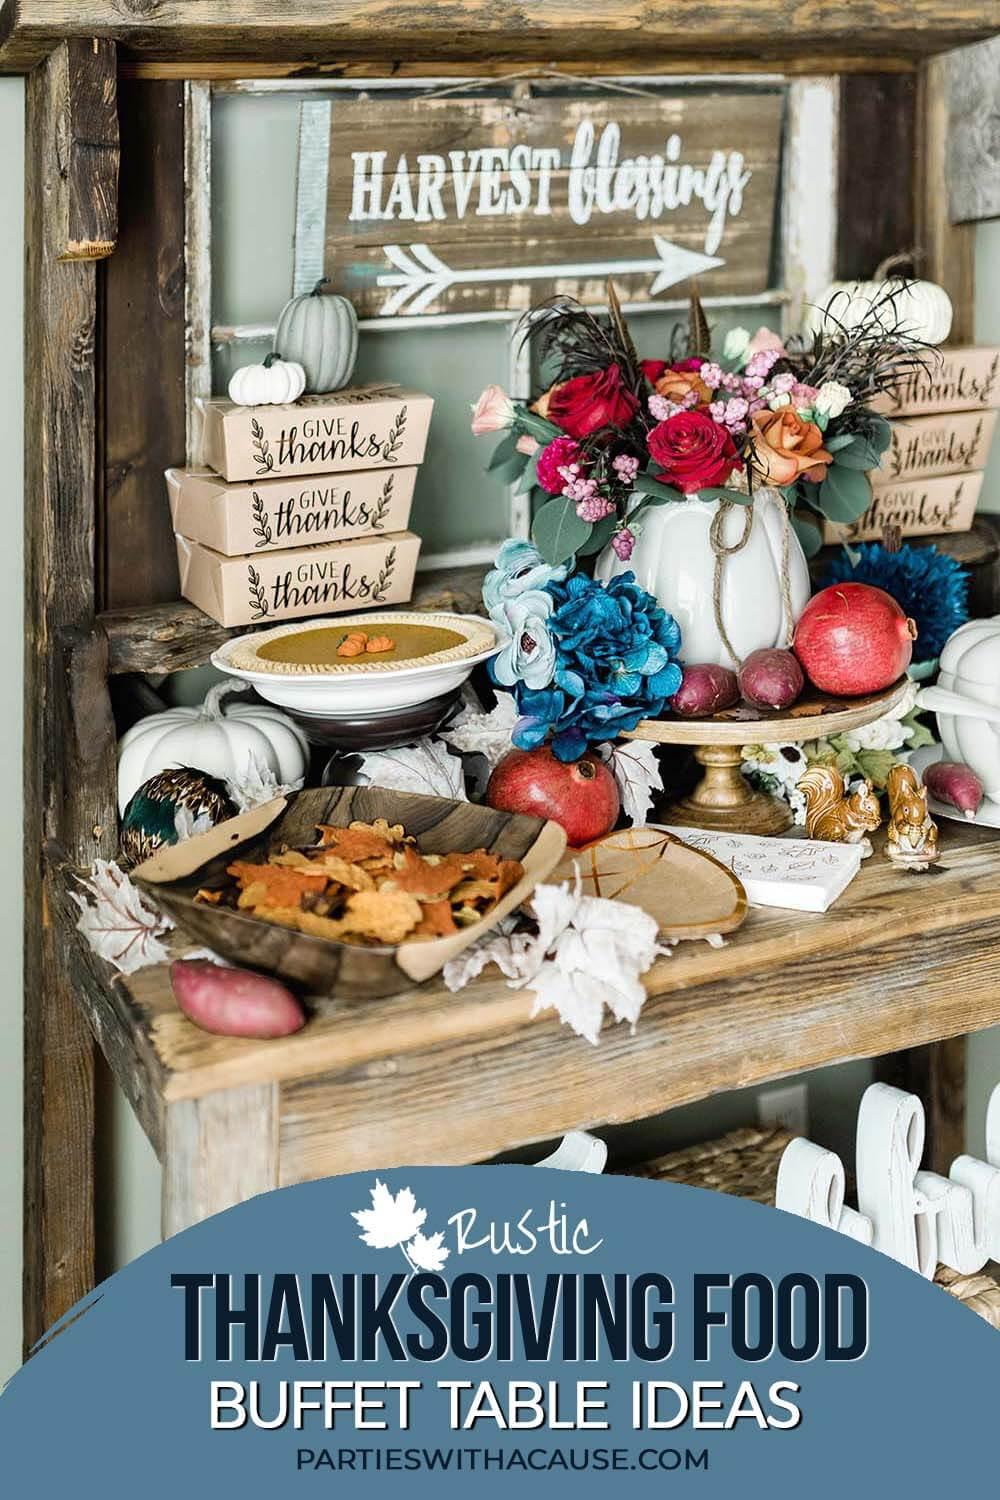 Thanksgiving buffet table decor ideas by Salt Lake Party Stylist